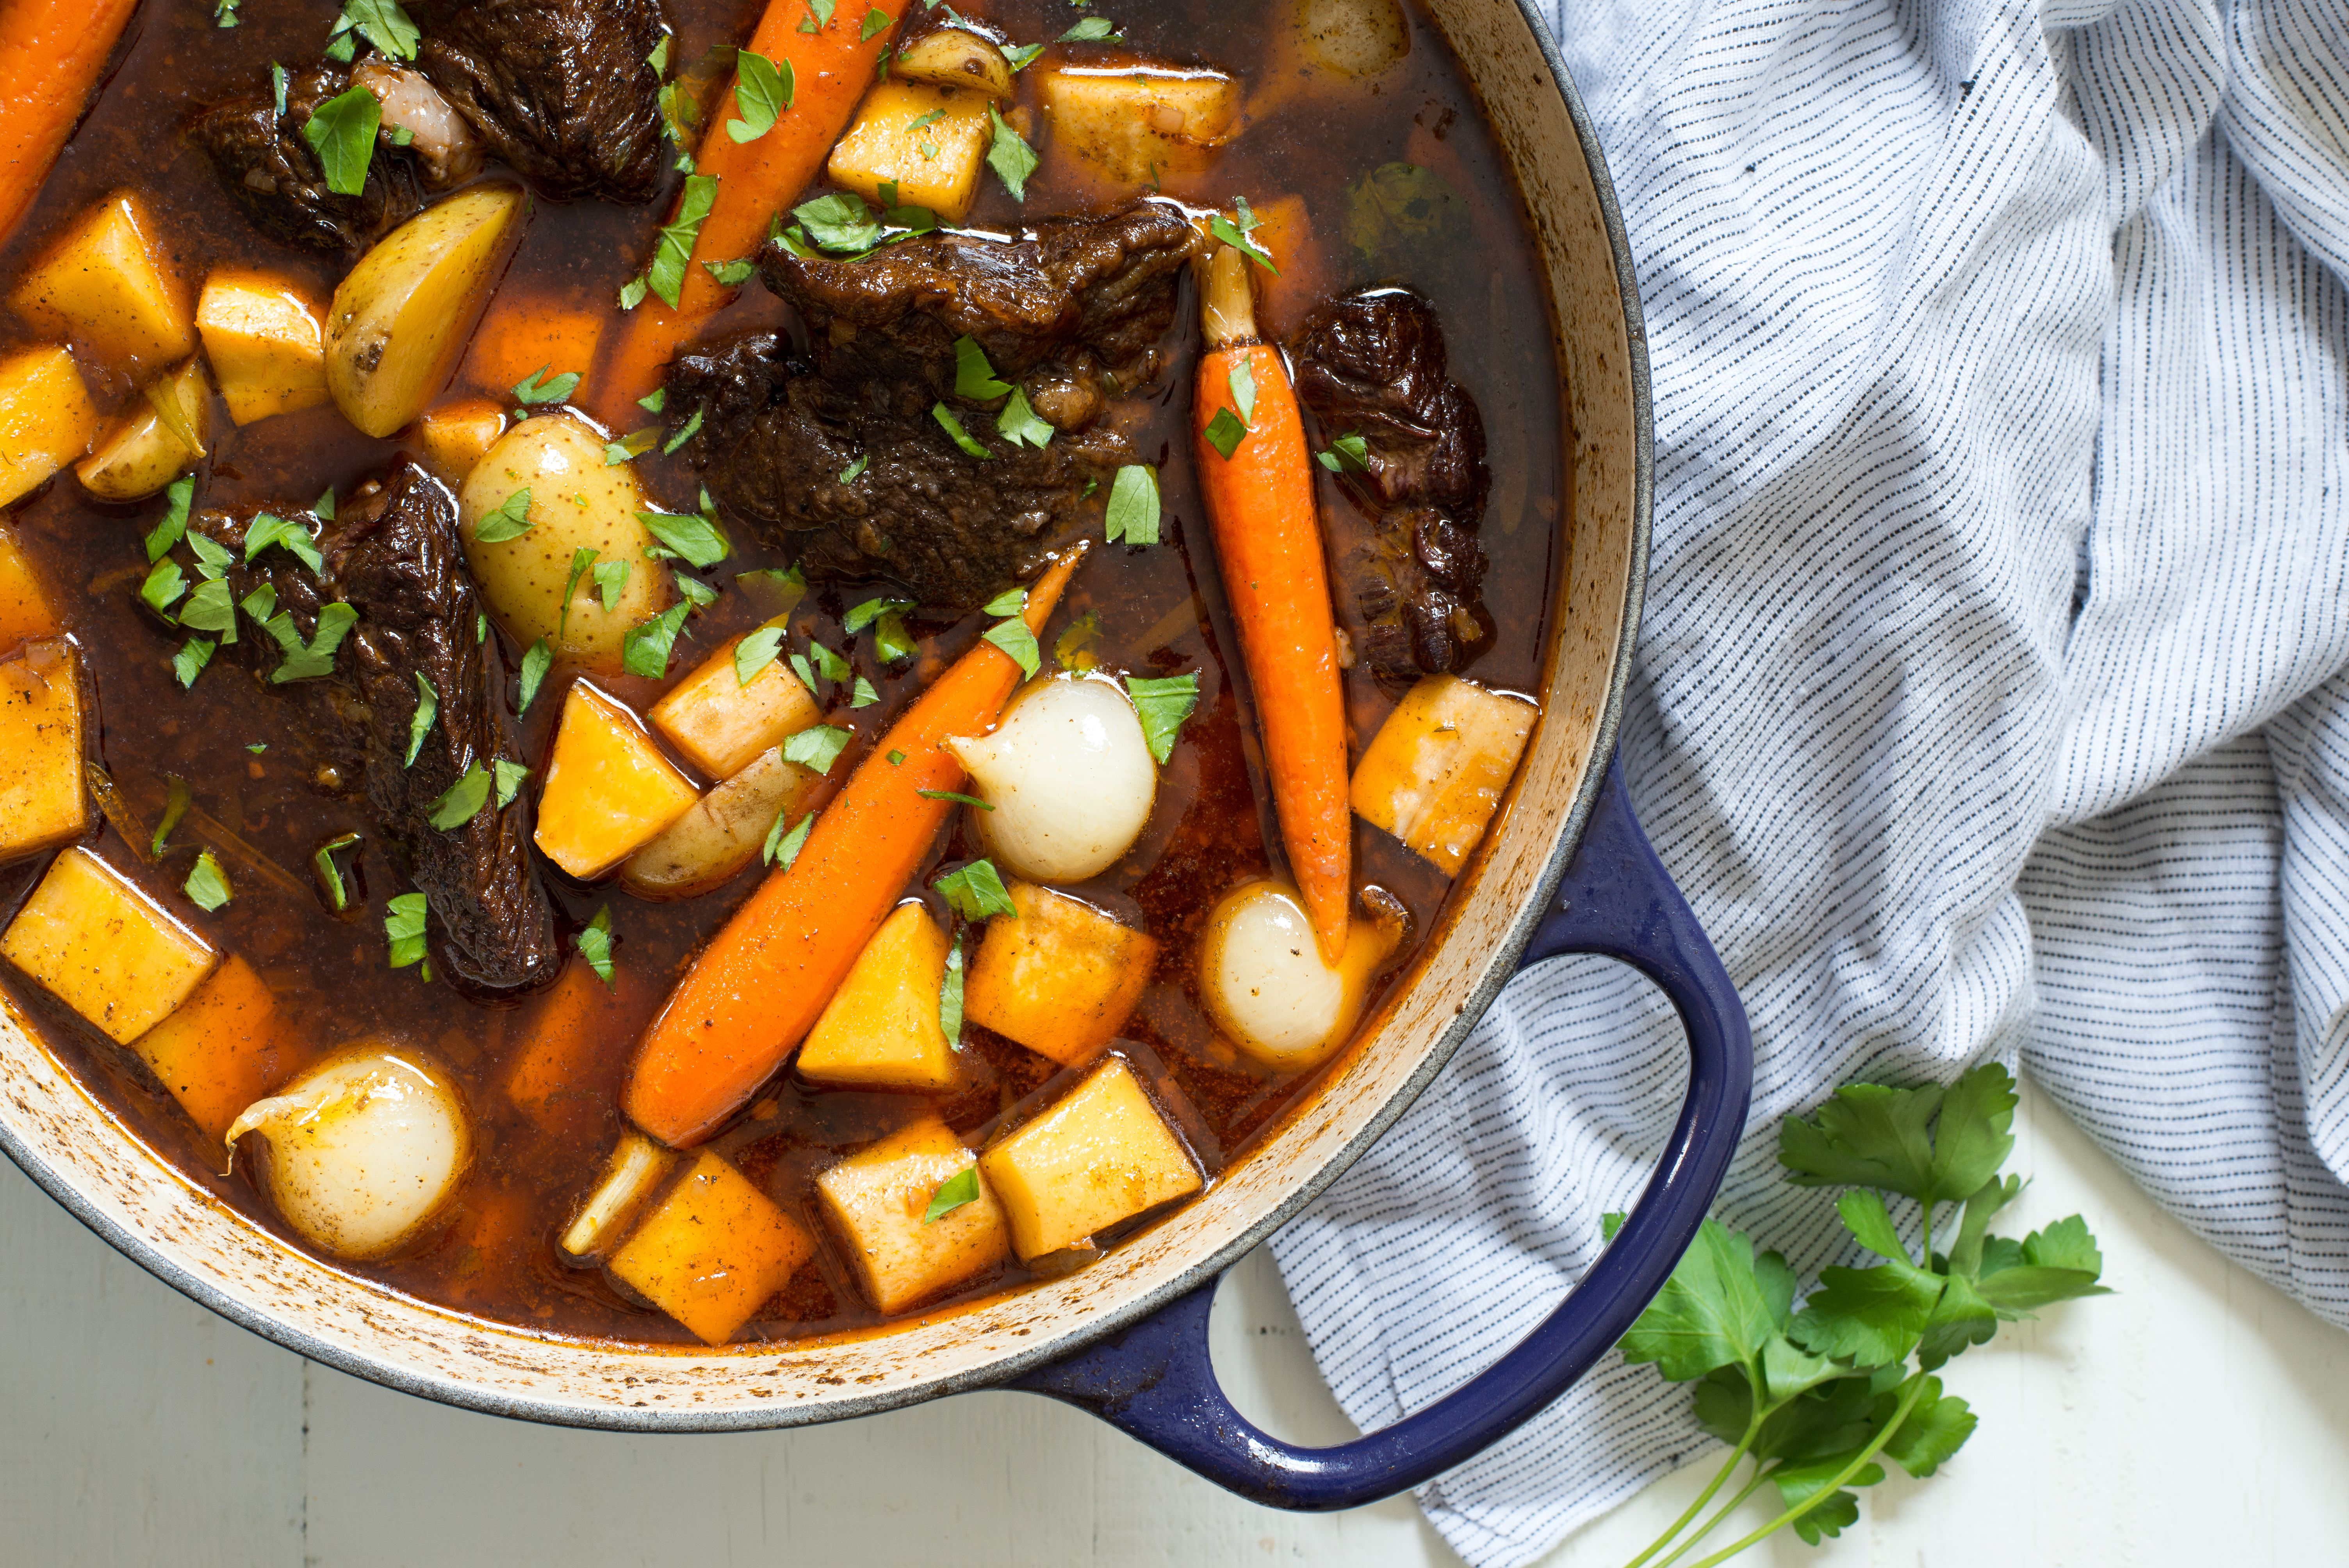 22 Big Cooking Projects for a Snow Day   Root Vegetable Beef Stew with Mushroom and Spinach Polenta